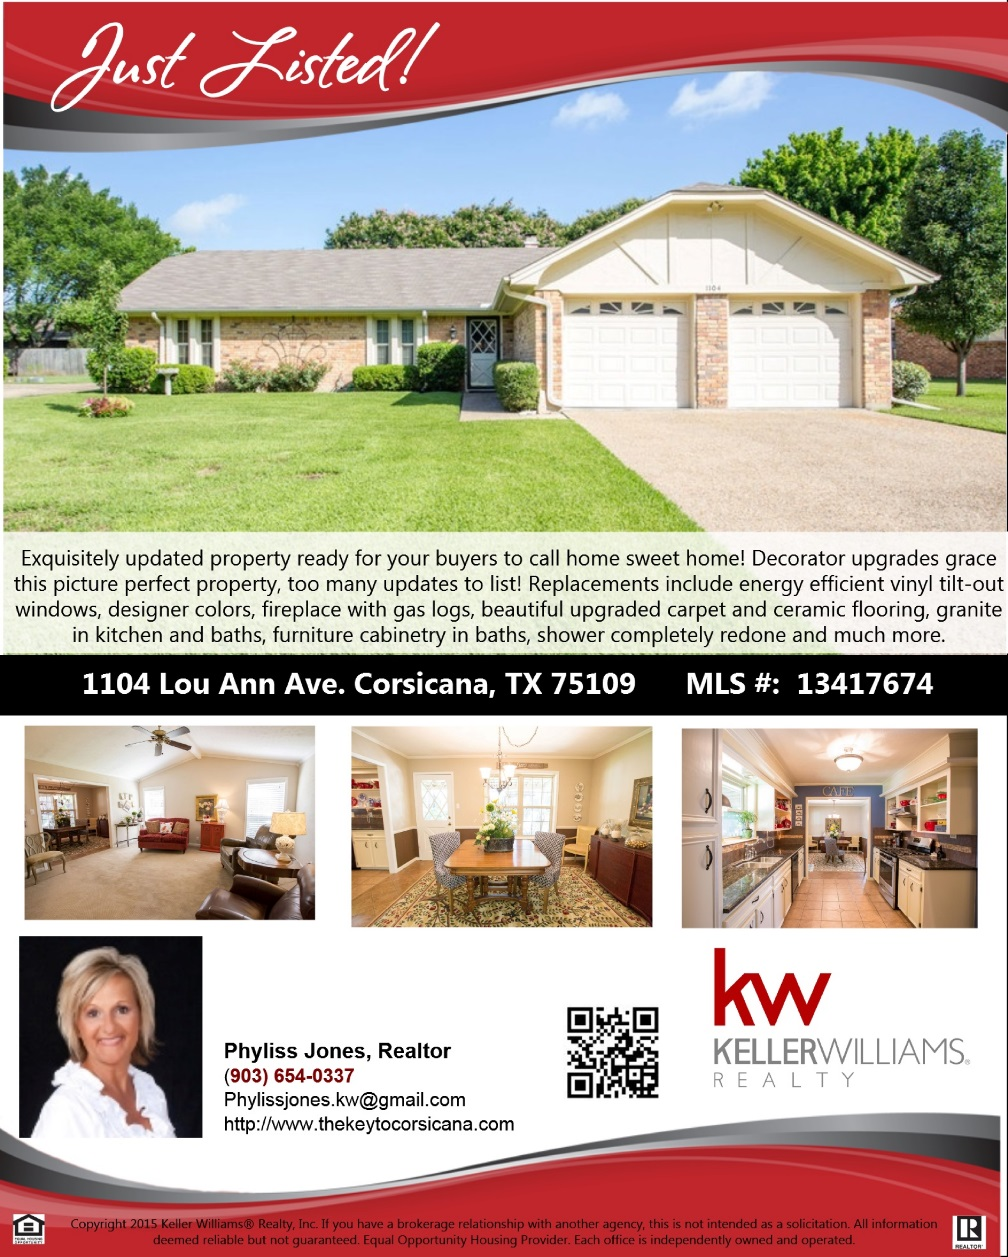 Home Sweet Home New Listing!